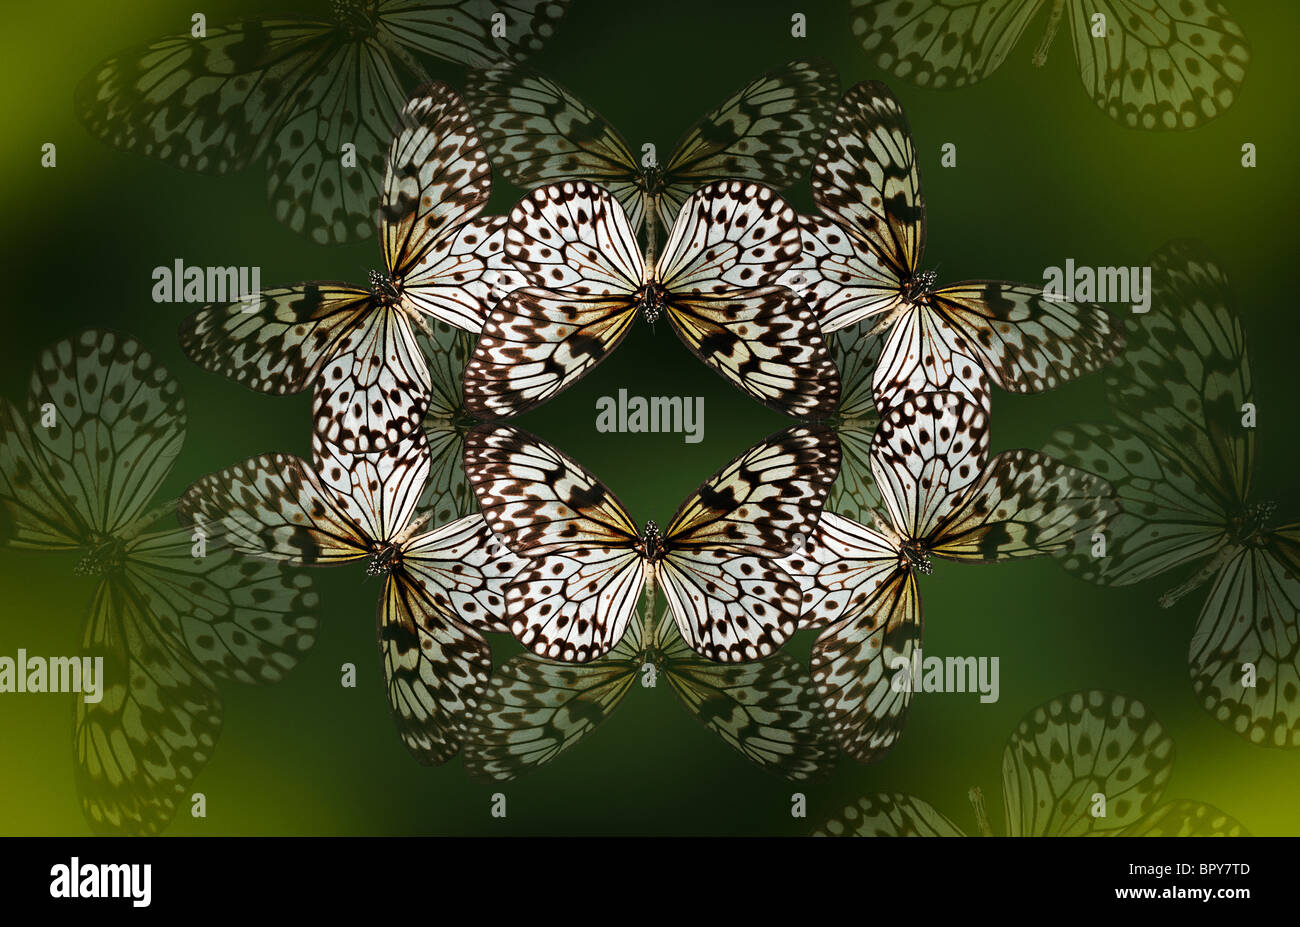 Tree nymph butterfly making a beautiful kaleidoscope like pattern on a deep forest green background. - Stock Image